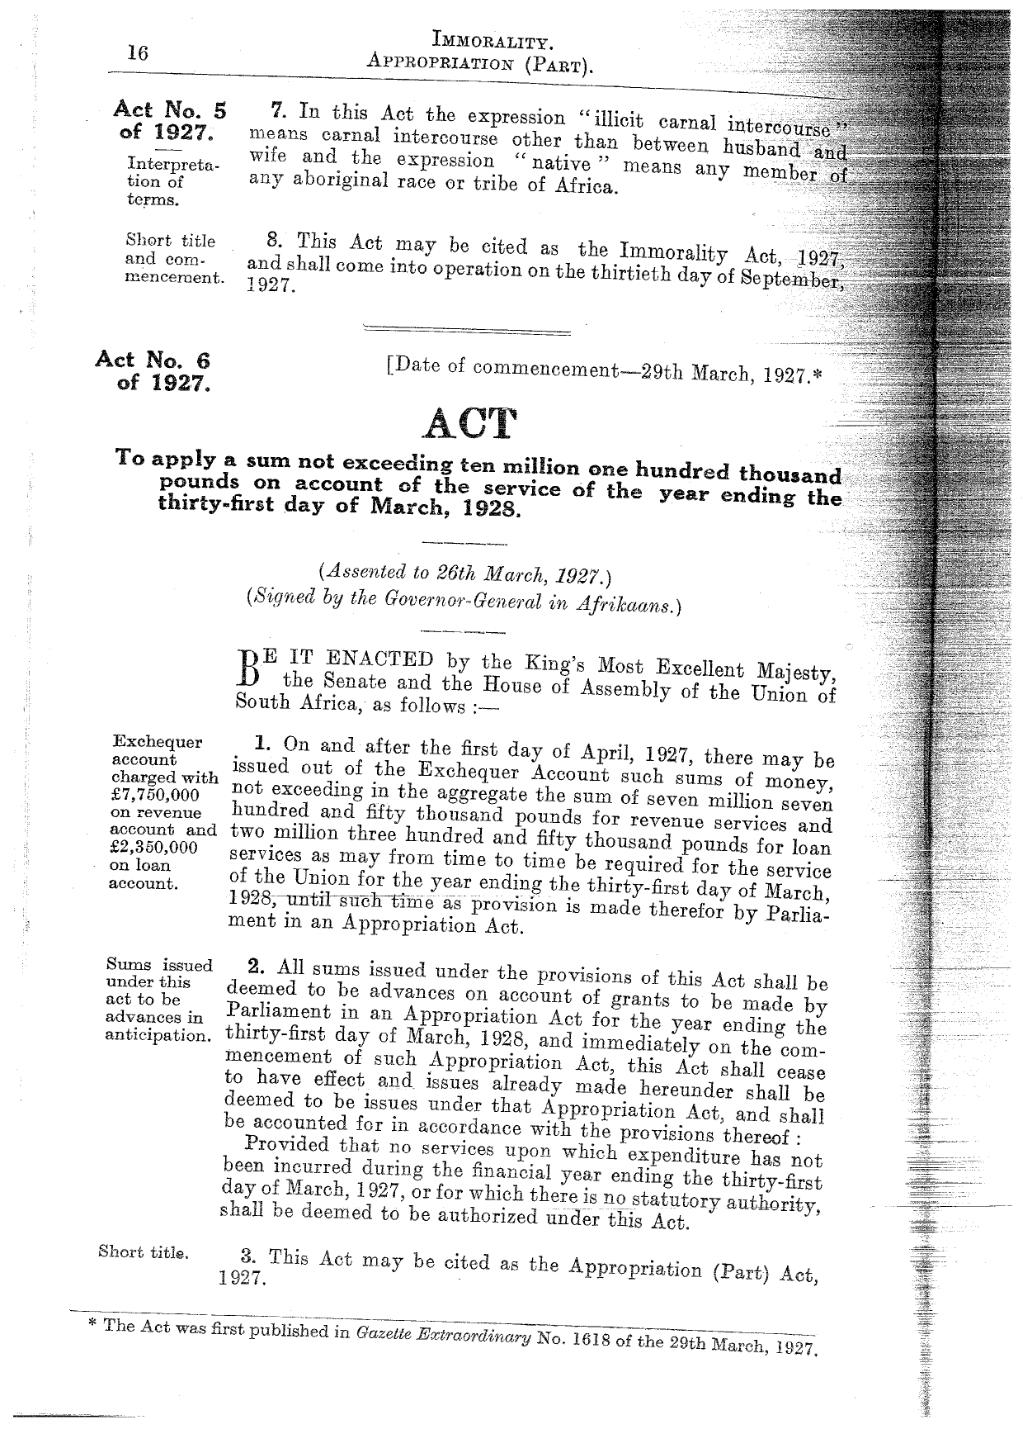 Immorality Act 1927 Page:immorality Act